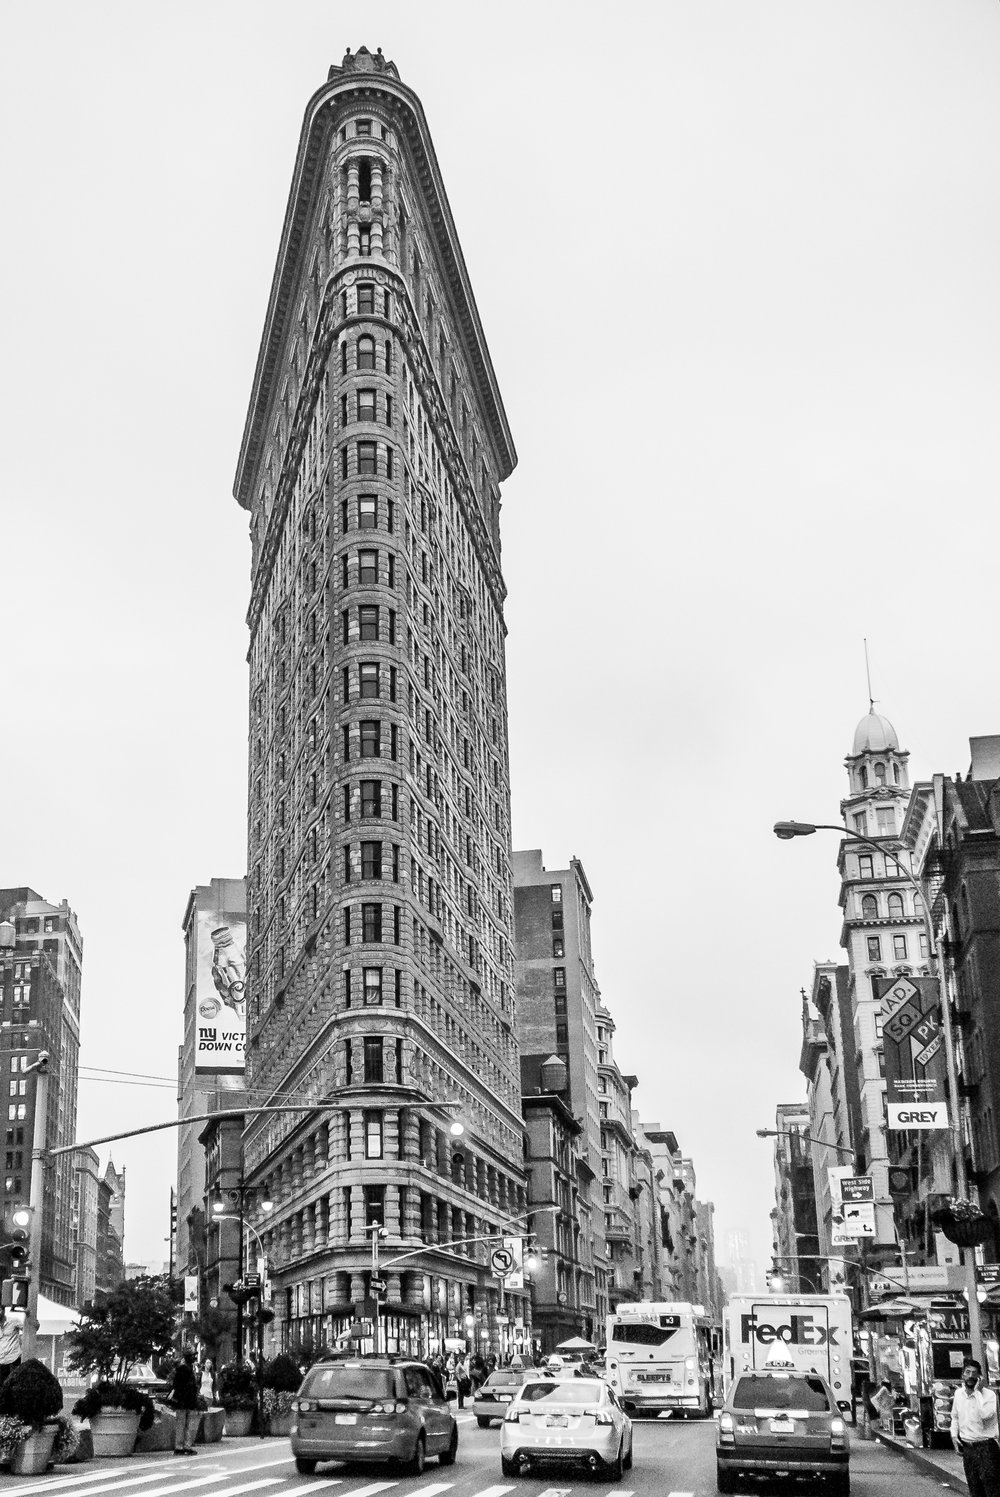 Flat Iron Building - NYC (US)